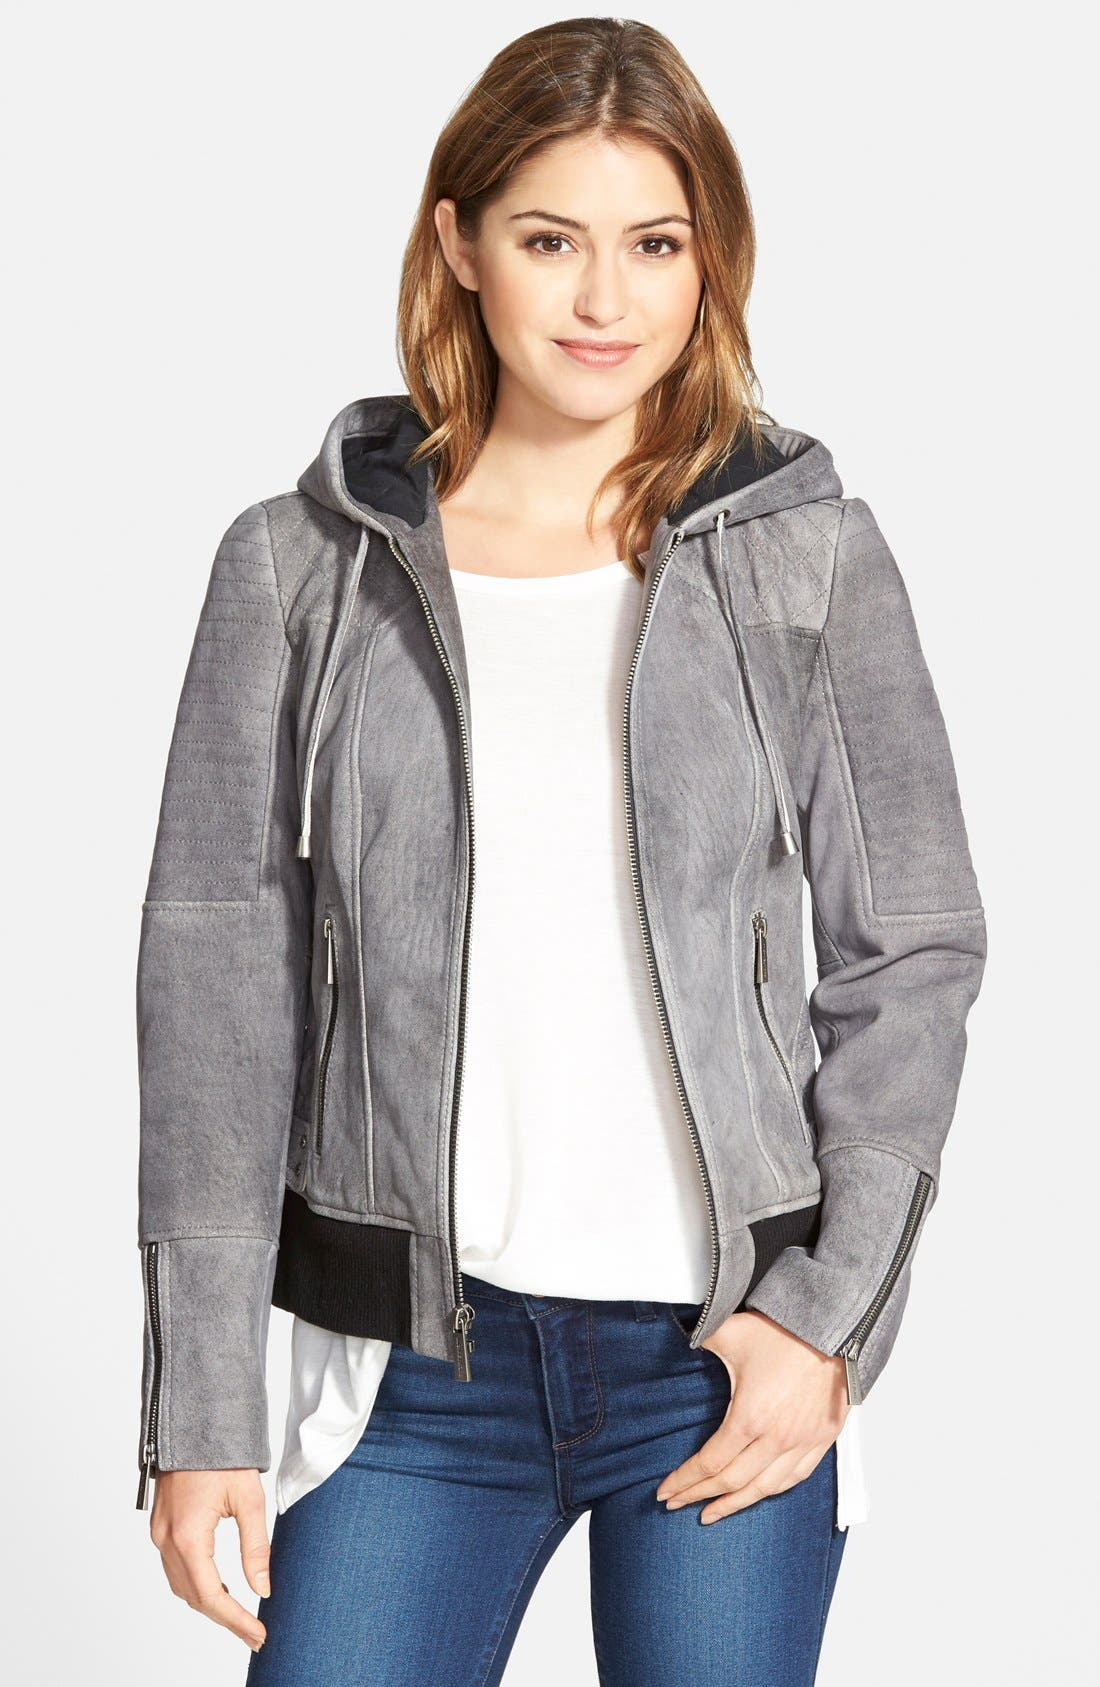 Main Image - MICHAEL Michael Kors Hooded Distressed Leather Bomber Jacket